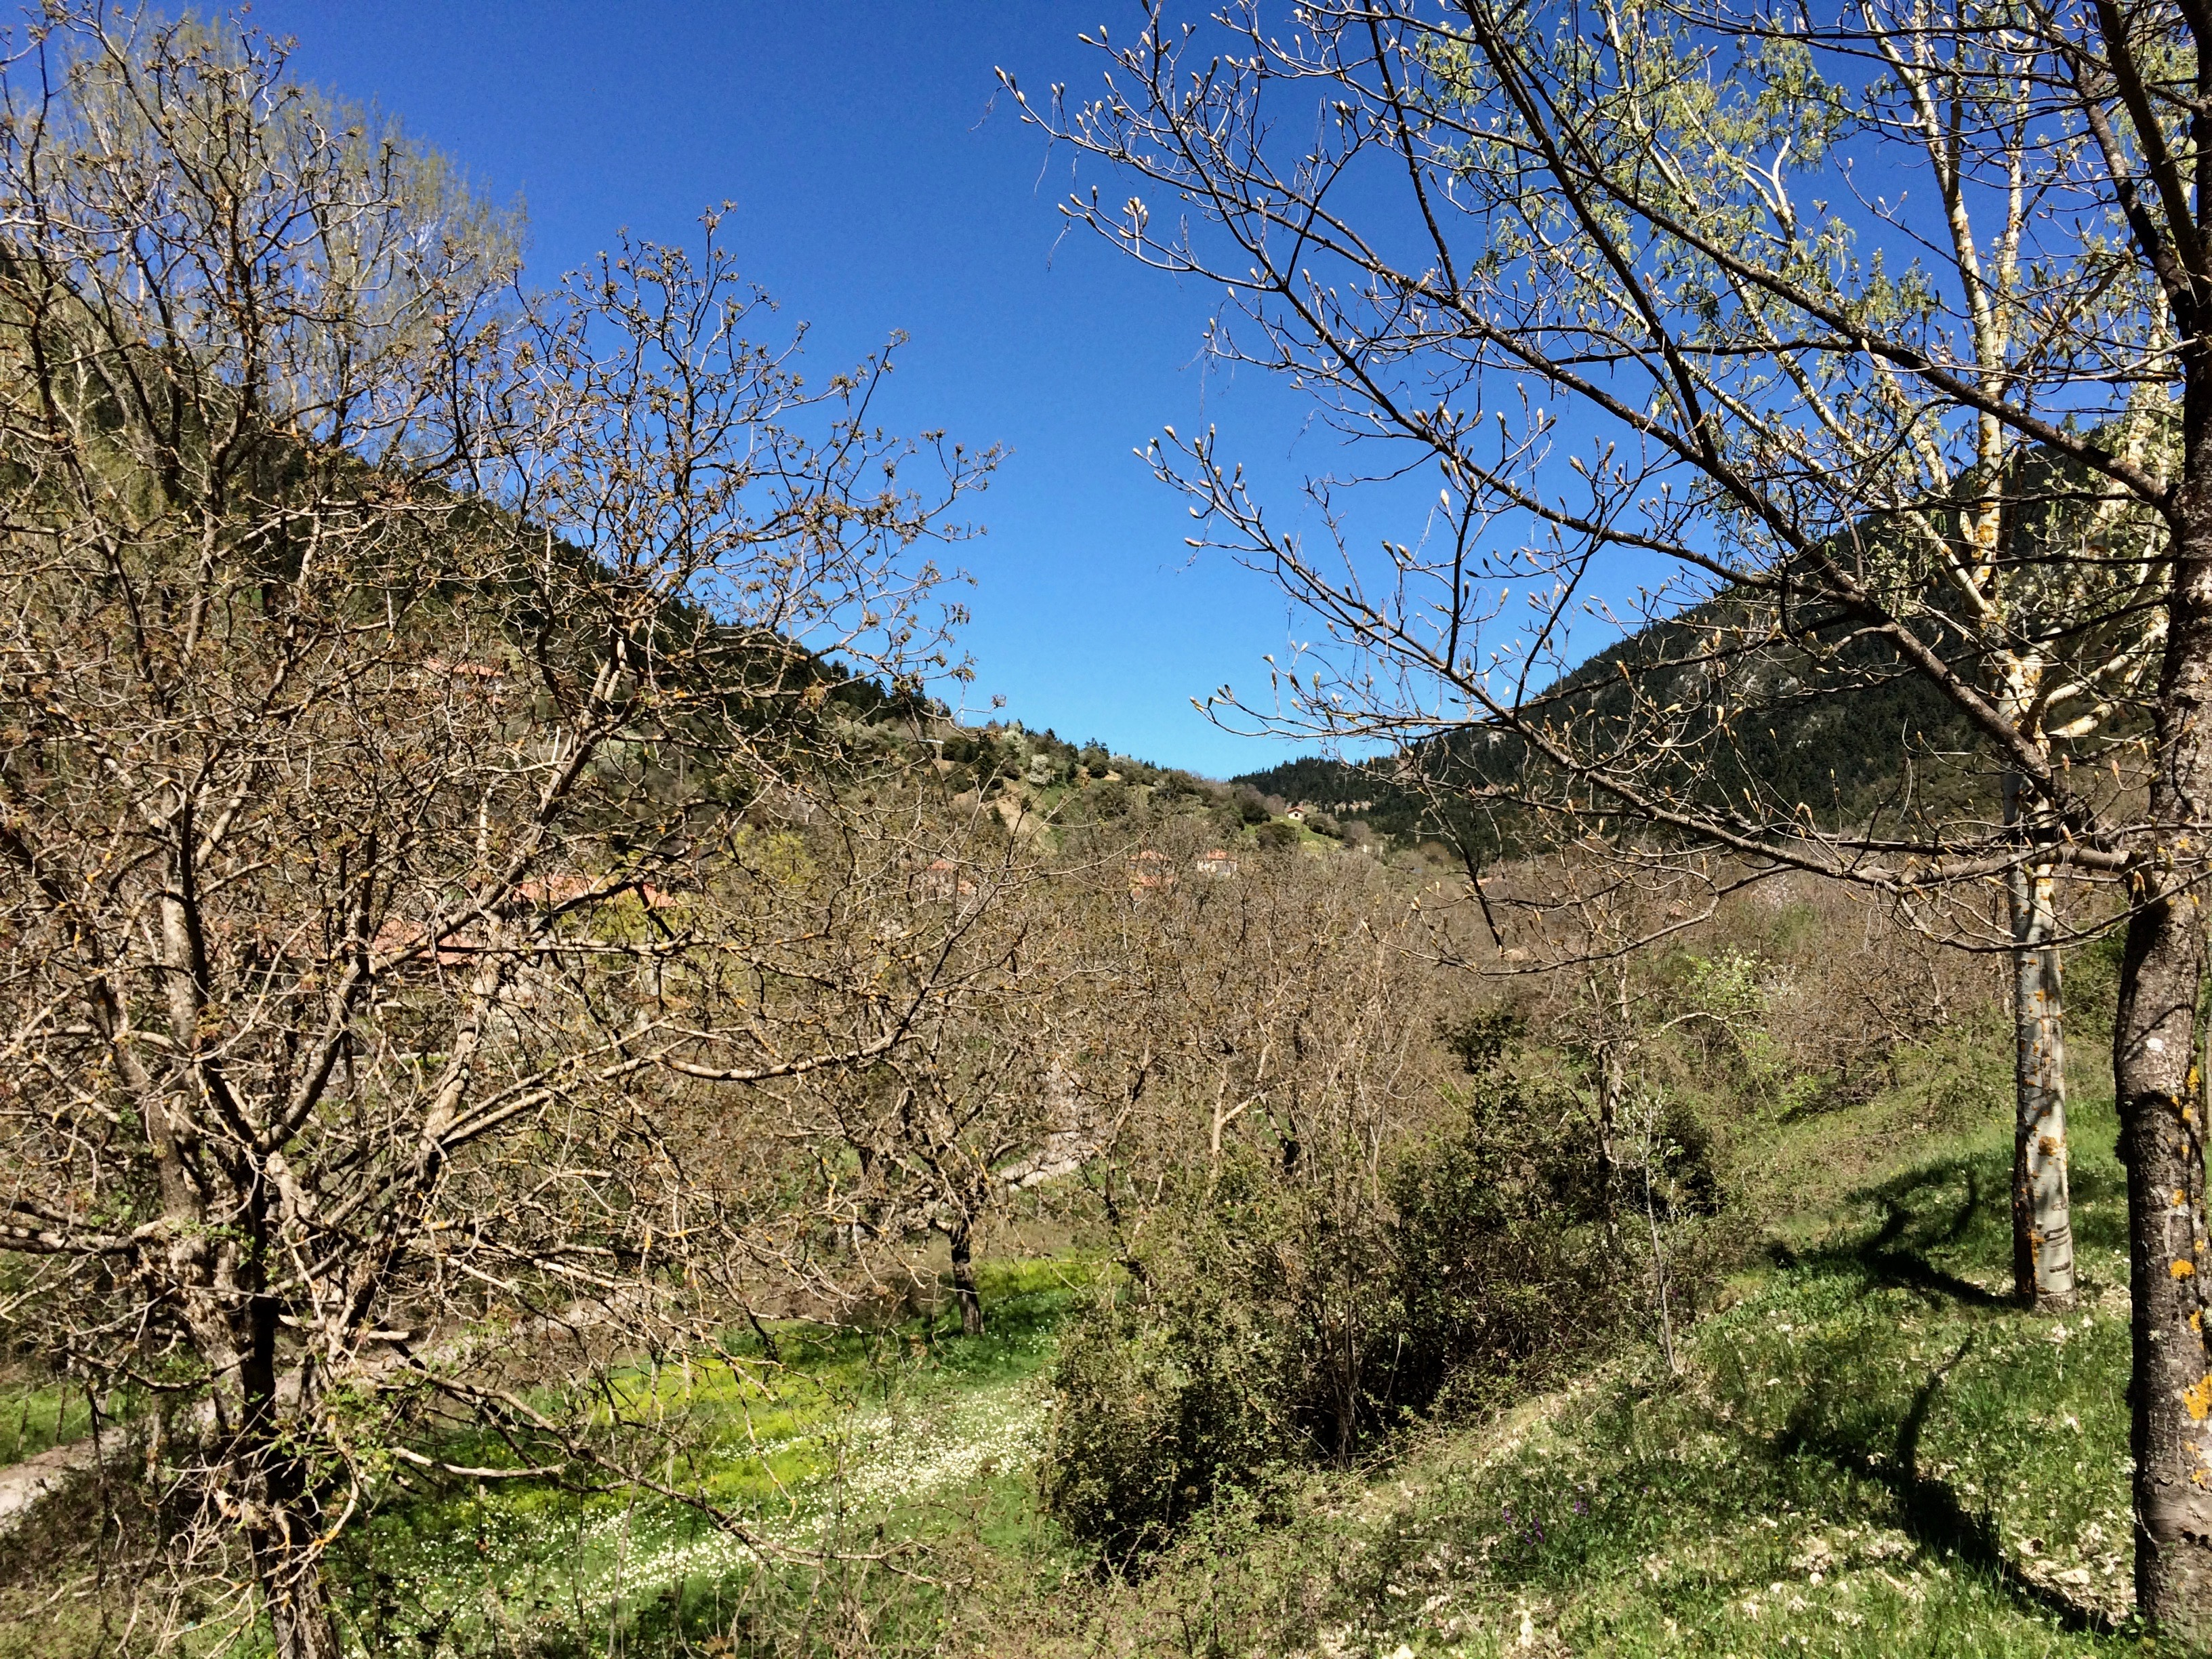 Hiking in Greece: A Step Towards Sustainable Tourism